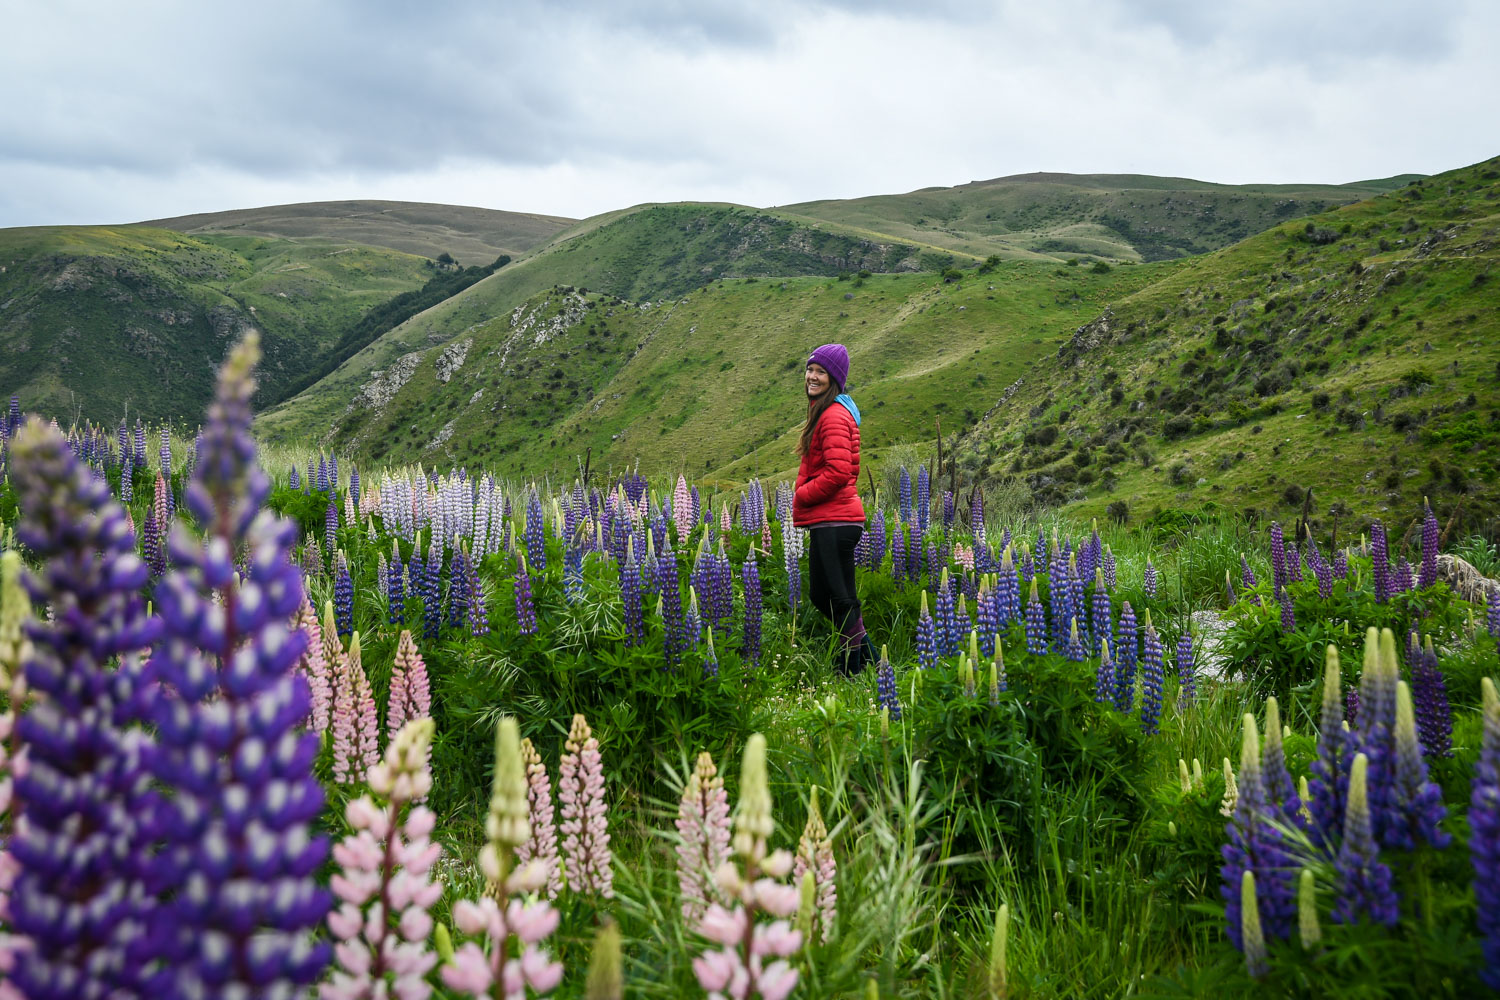 Those lupines might look beautiful, but they're actually an invasive species!